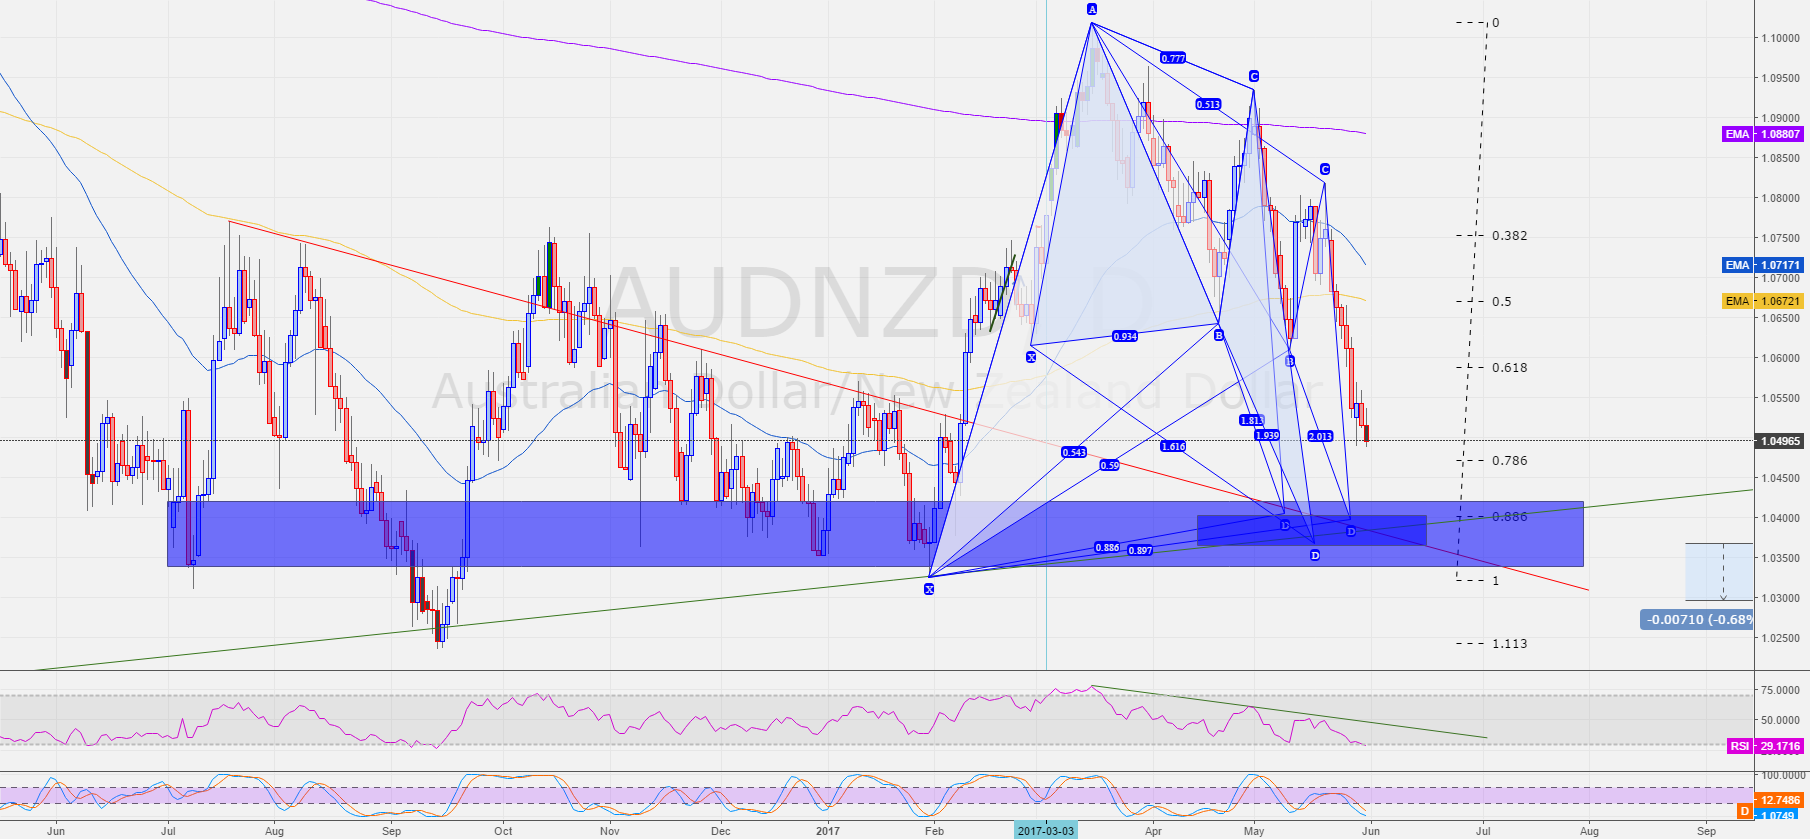 AUDNZD - POT confluence area - DAILY - Long